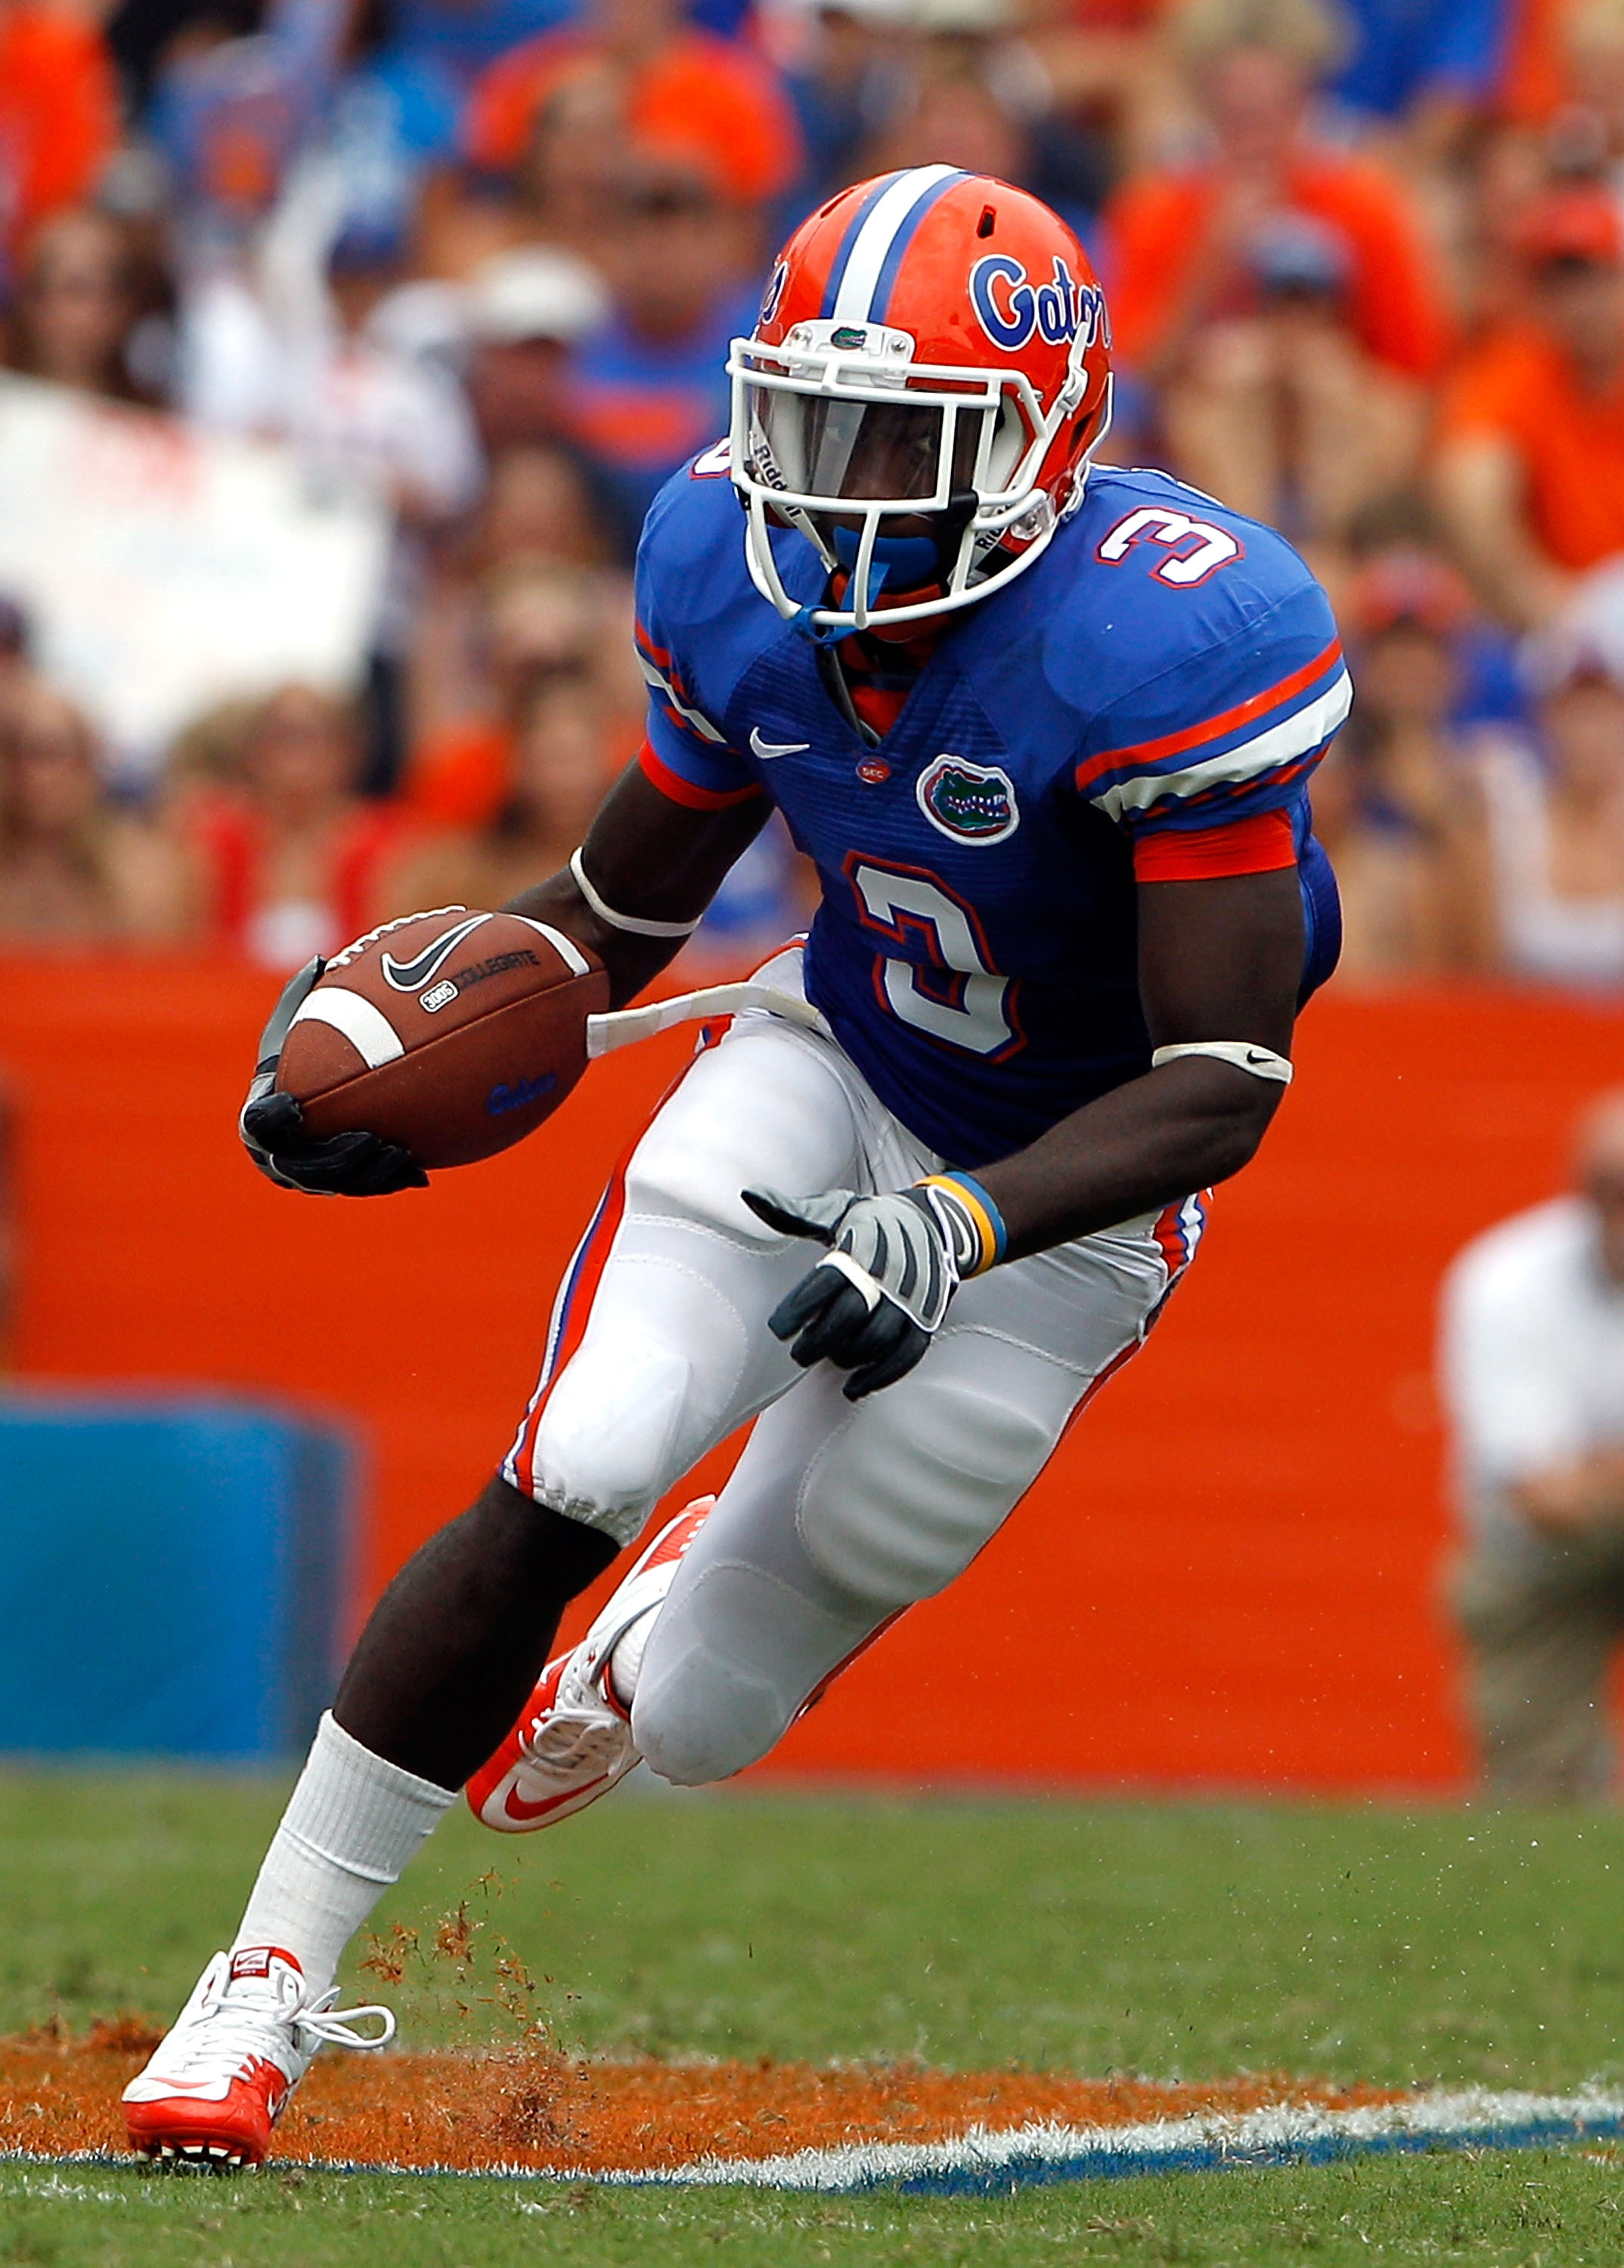 GAINESVILLE, FL - SEPTEMBER 04:  Chris Rainey #3 of the Florida Gators runs after making a reception against the Miami University RedHawks at Ben Hill Griffin Stadium on September 4, 2010 in Gainesville, Florida.  (Photo by Sam Greenwood/Getty Images)